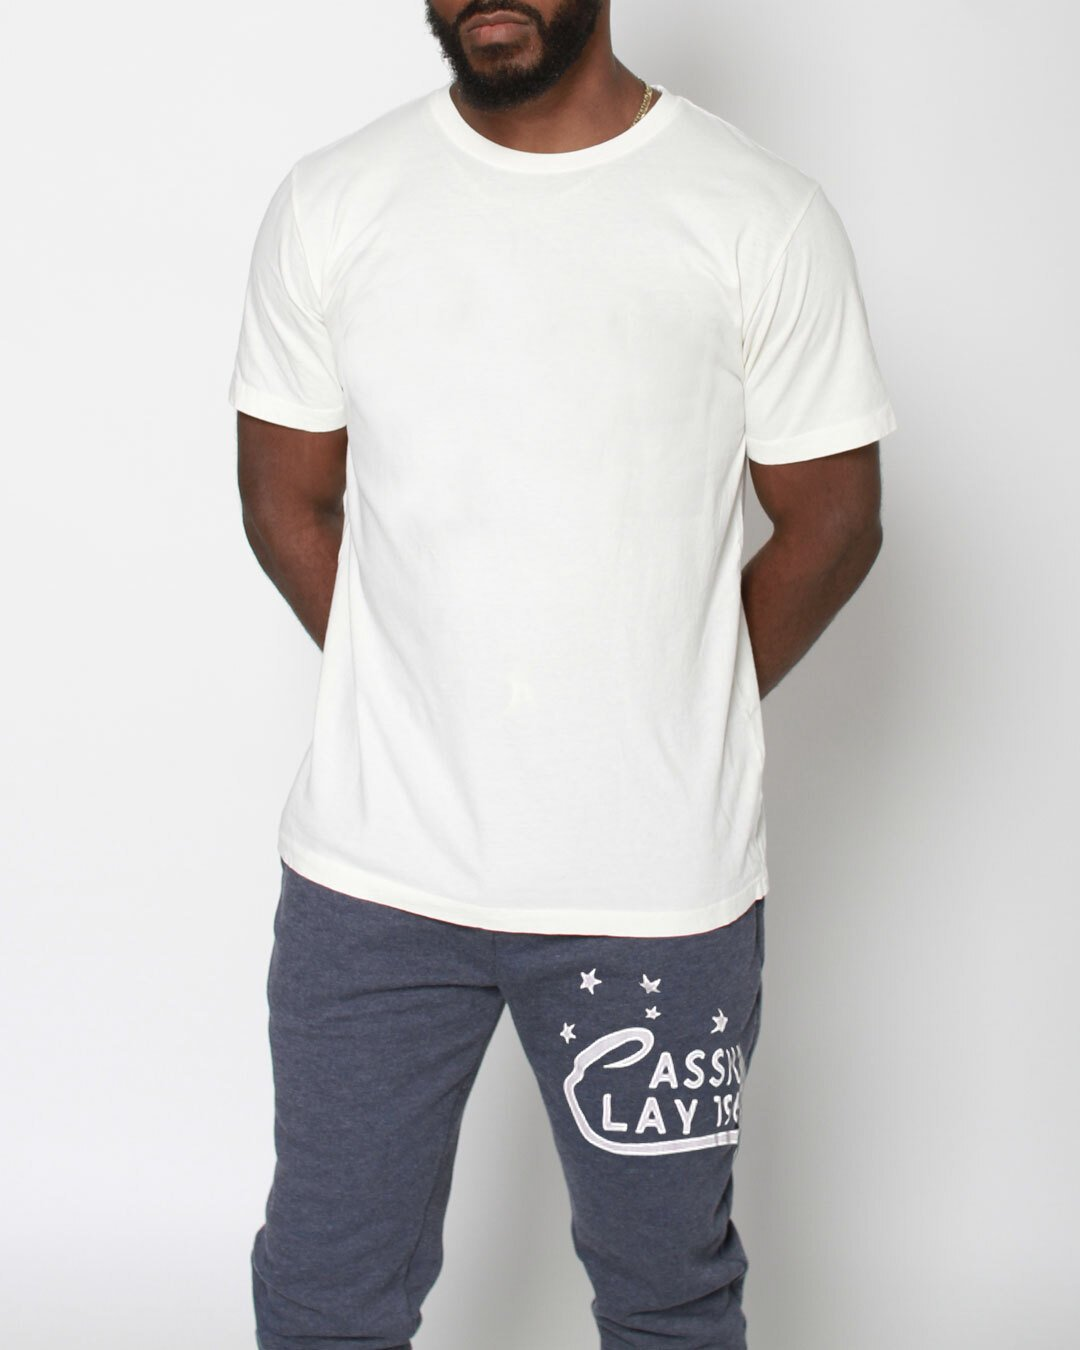 Cassius Clay Legacy Sweatpants - Roots of Inc dba Roots of Fight